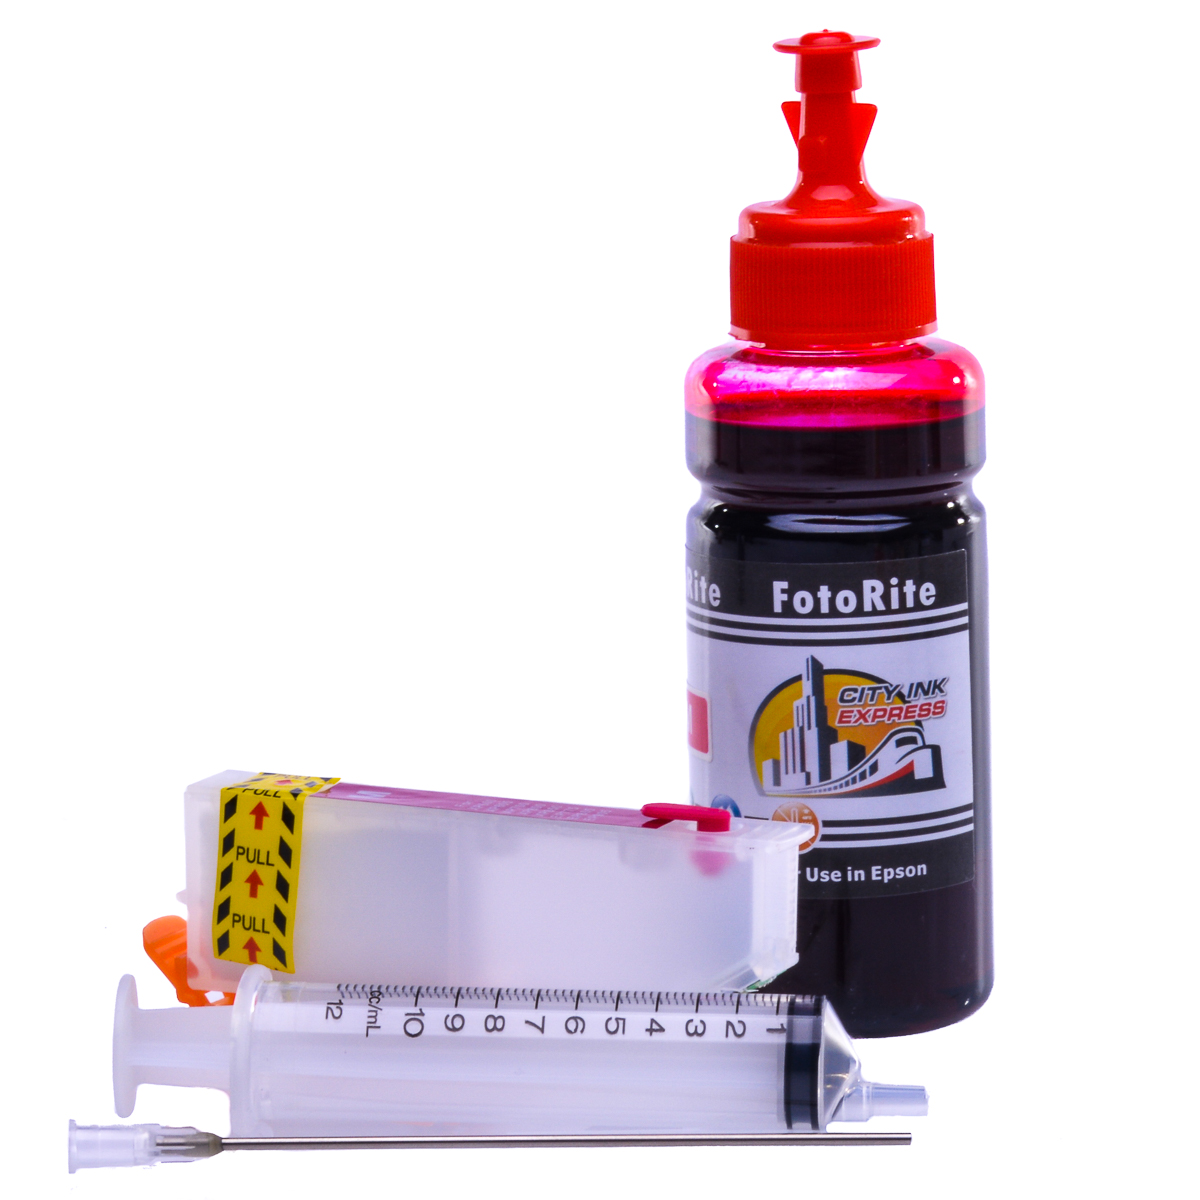 Refillable T3343 Magenta Cheap printer cartridges for Epson XP-540 C13T33434010 dye ink